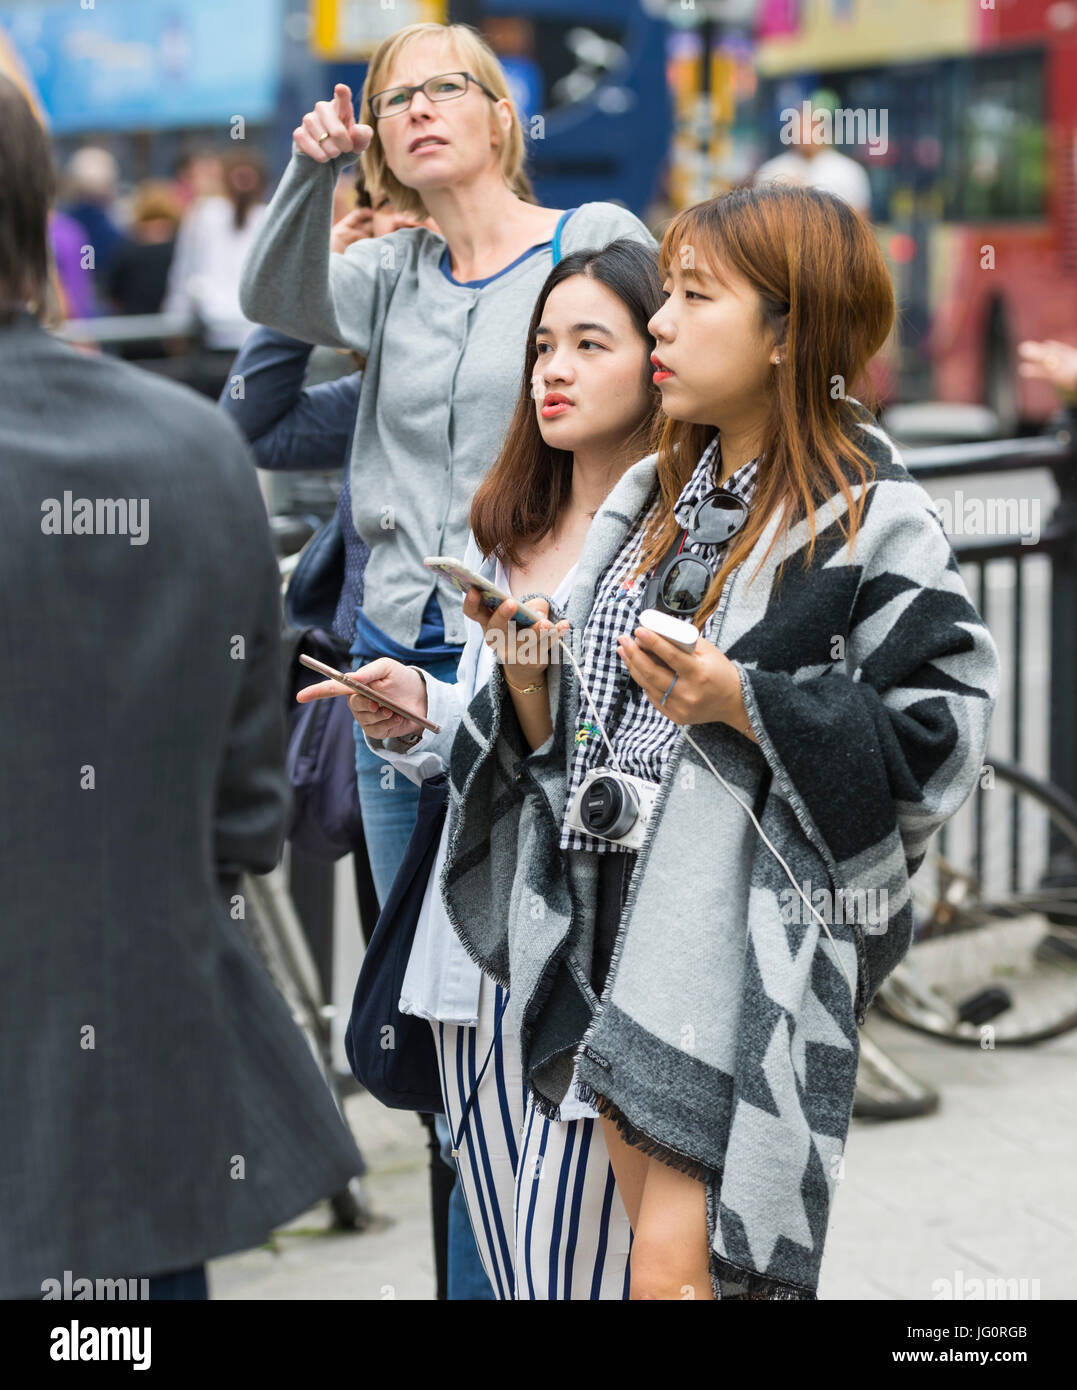 Young Japanese tourists in a busy city in the UK. Stock Photo